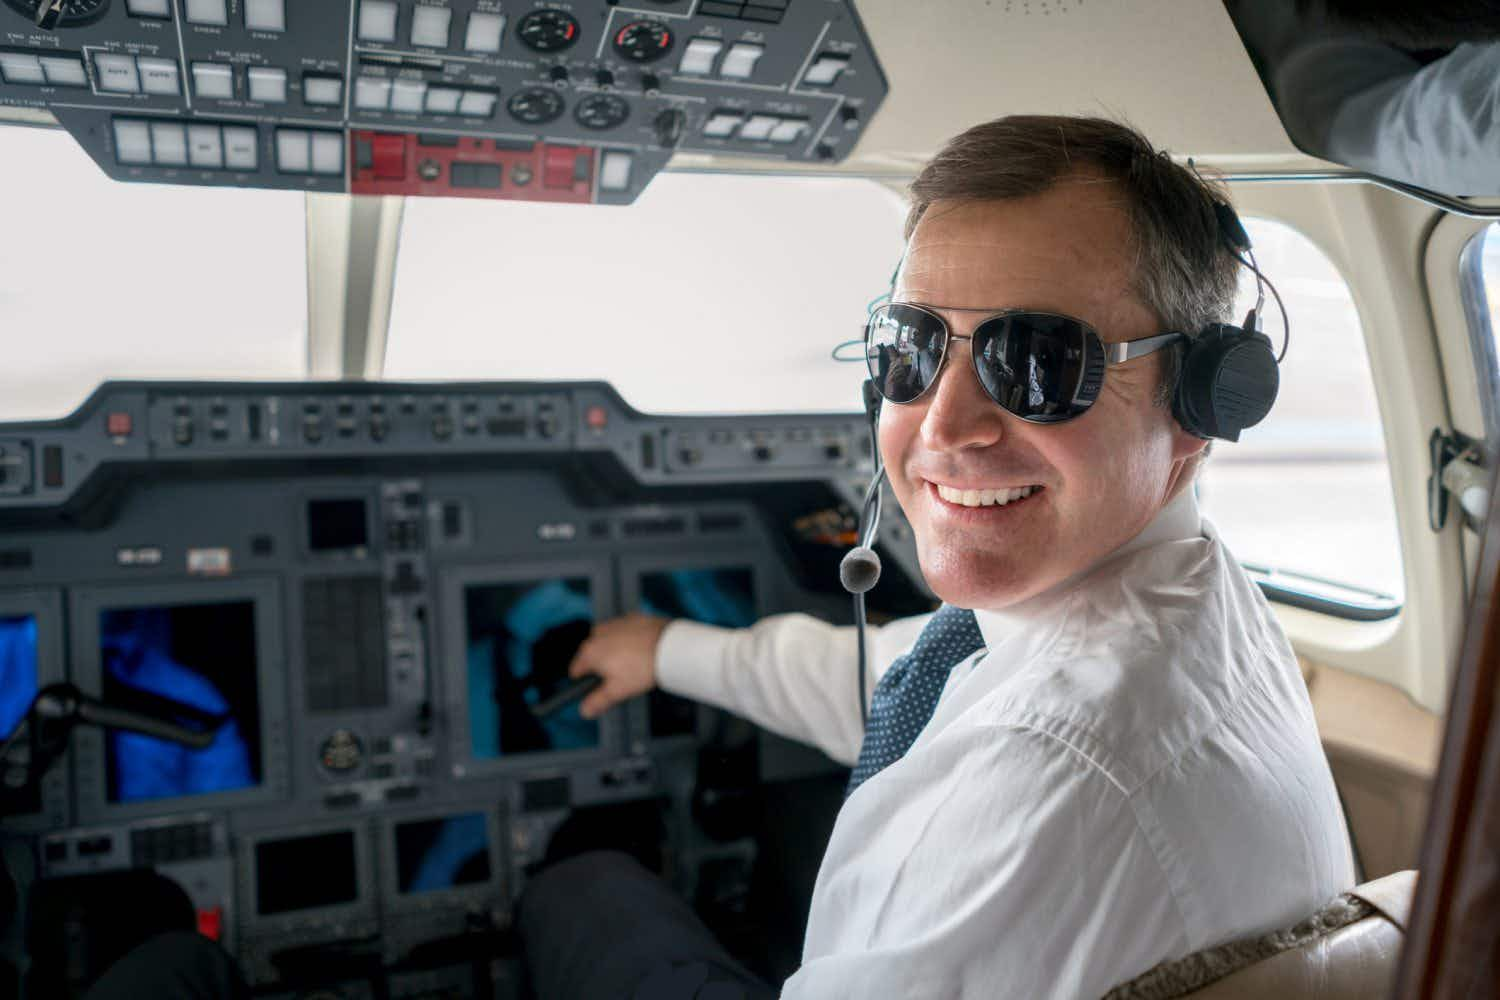 Which accent do passengers find sexiest for pilots in UK and Ireland?